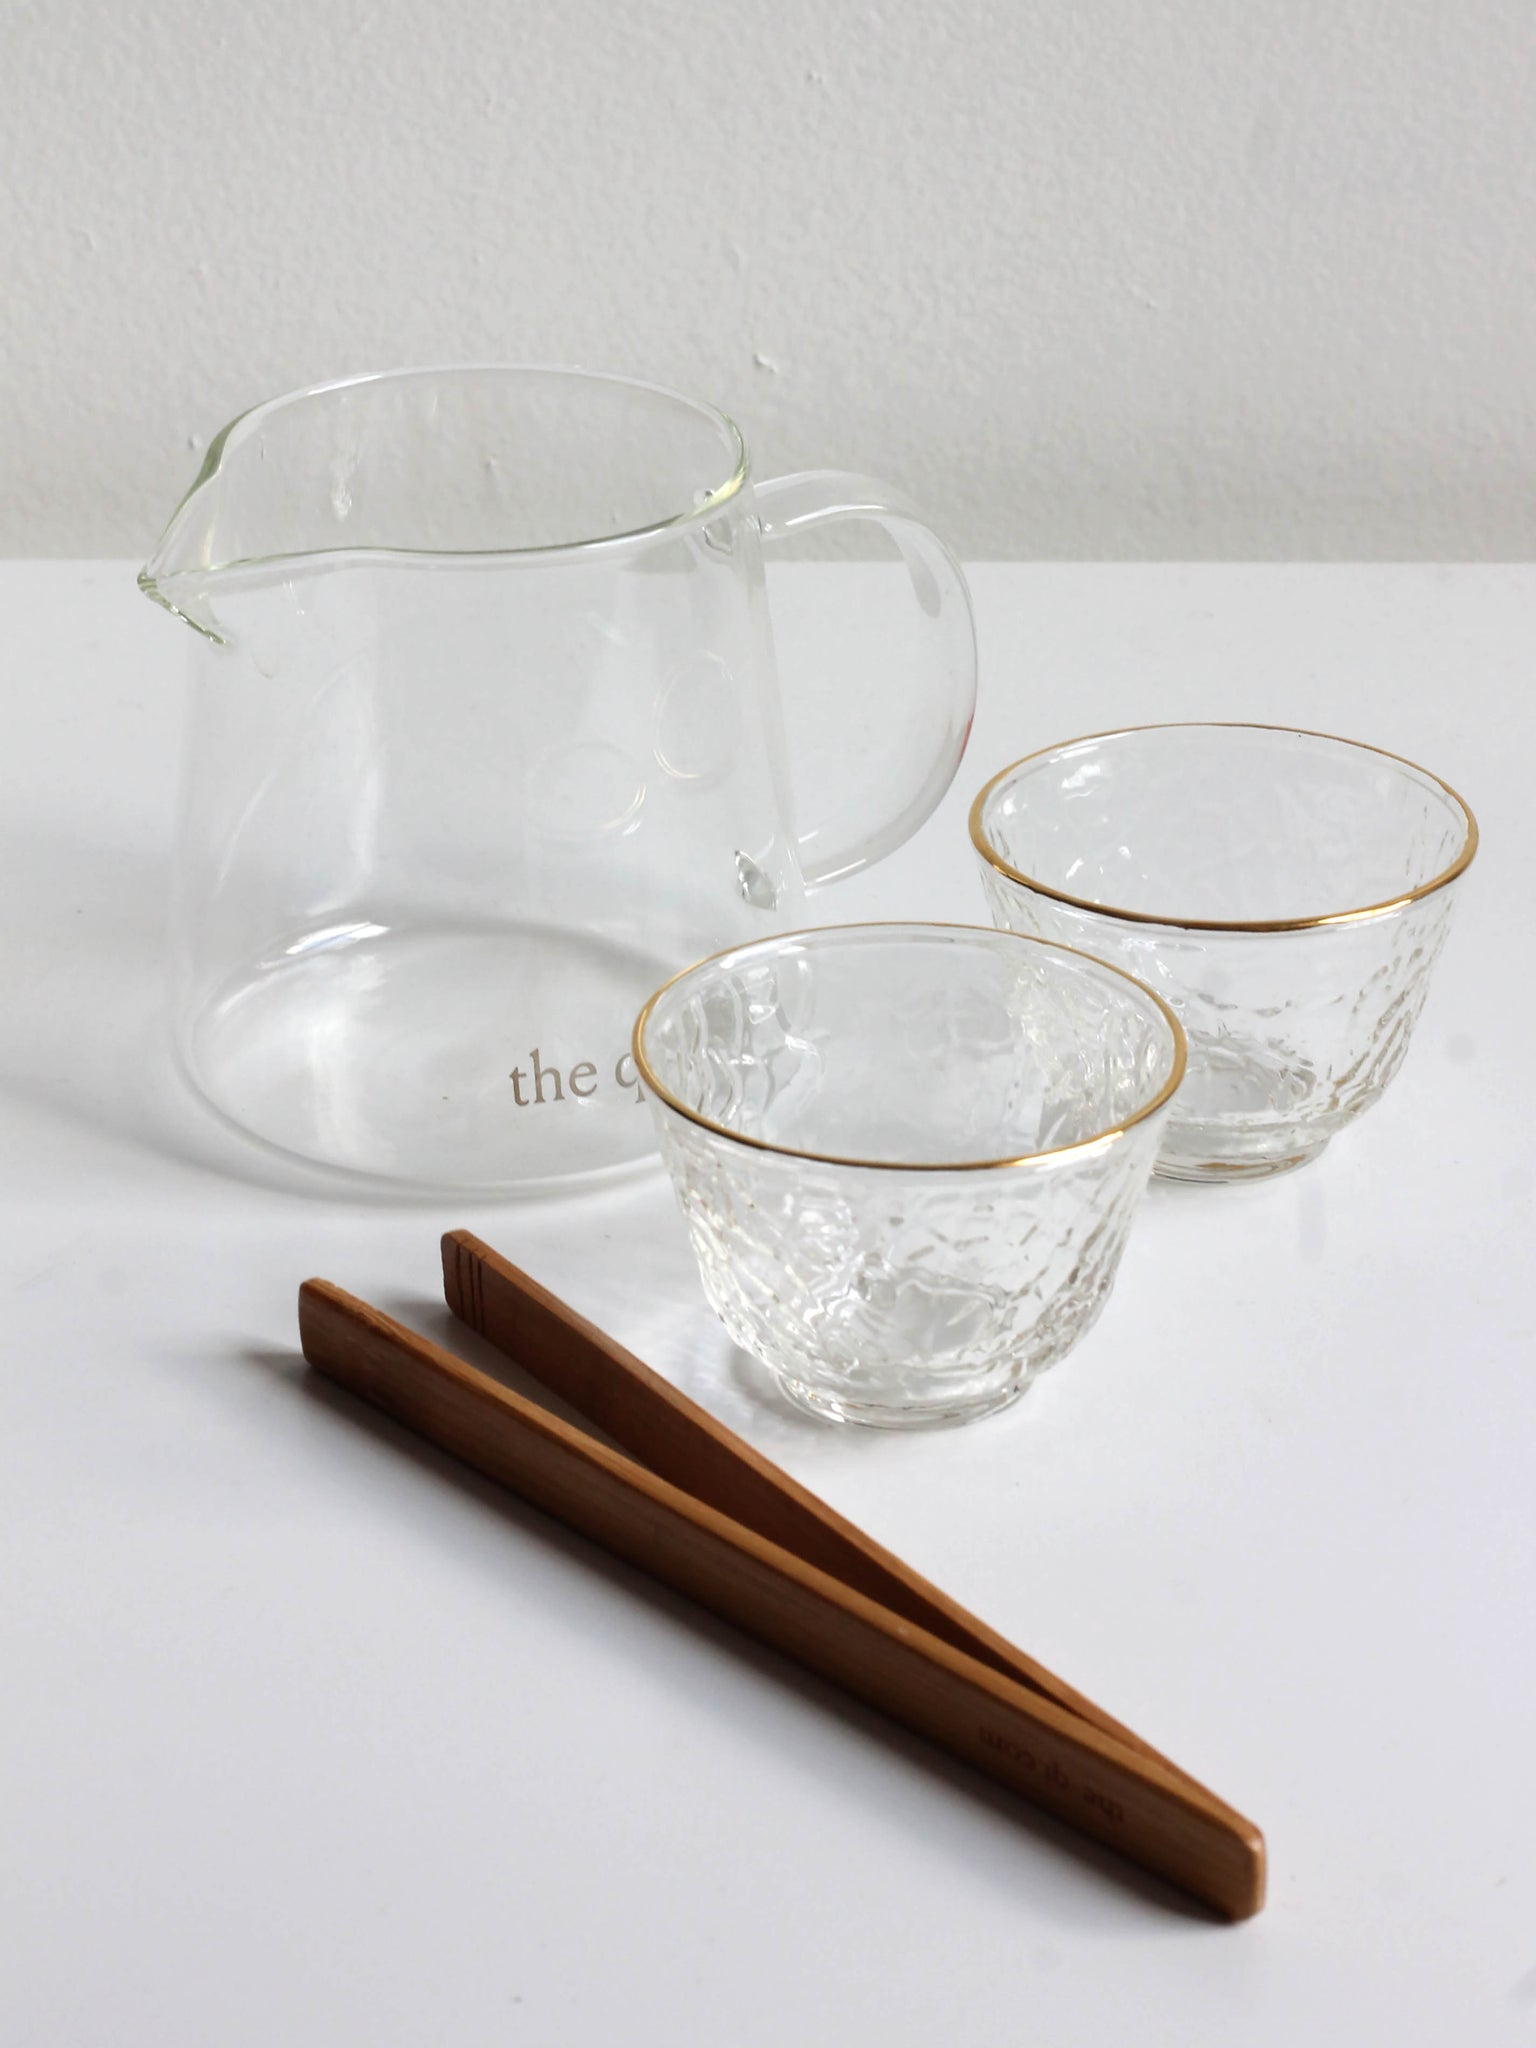 THE QI SMALL GLASS SERVING PITCHER